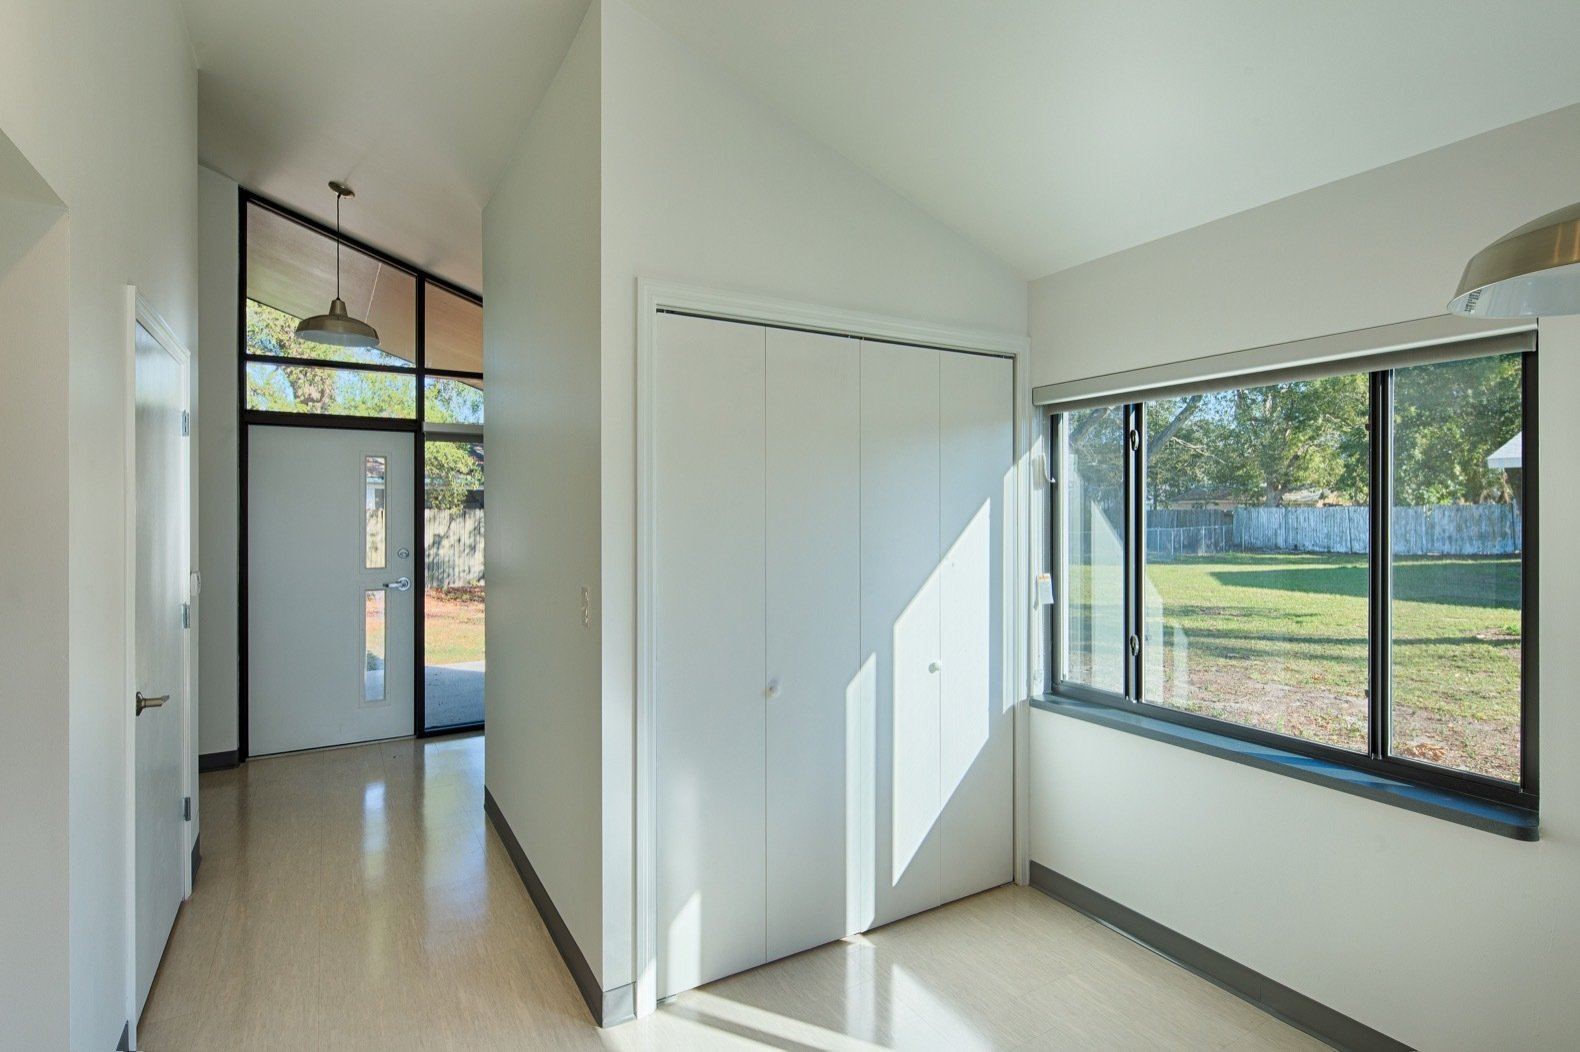 Laundry Room and Concealed The utility, air handler, as well as the washer and dryer units are neatly stored away in the back of the home.  Photo 8 of 14 in Budget Breakdown: These Transitional Homes For At-Risk Clients Cost Less Than $200K